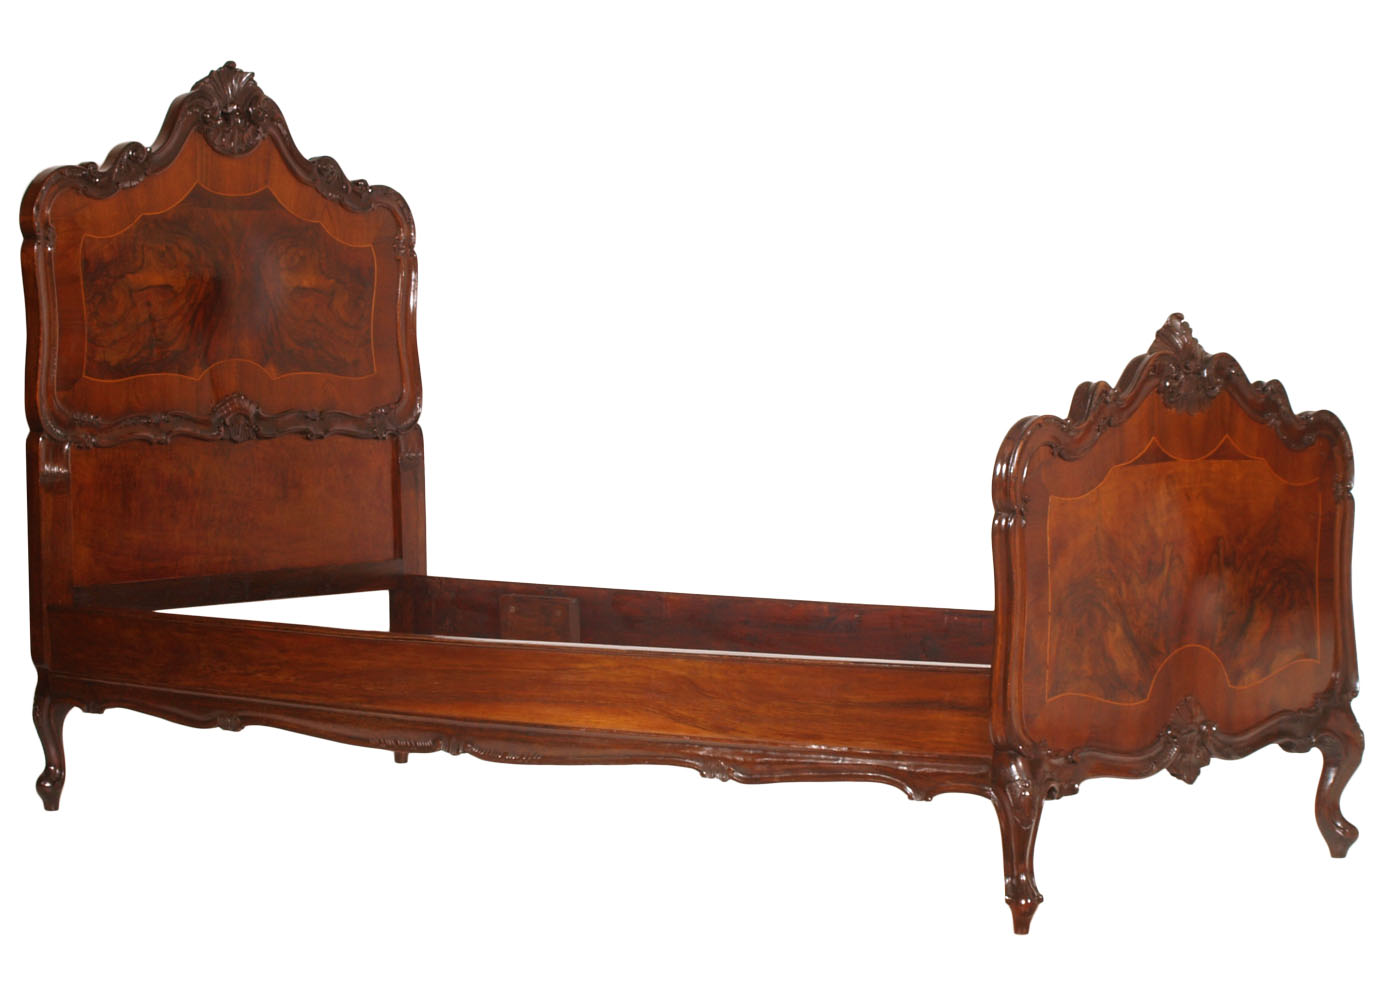 antique-chippendale-bedroom-furniture-set-MAH67-3